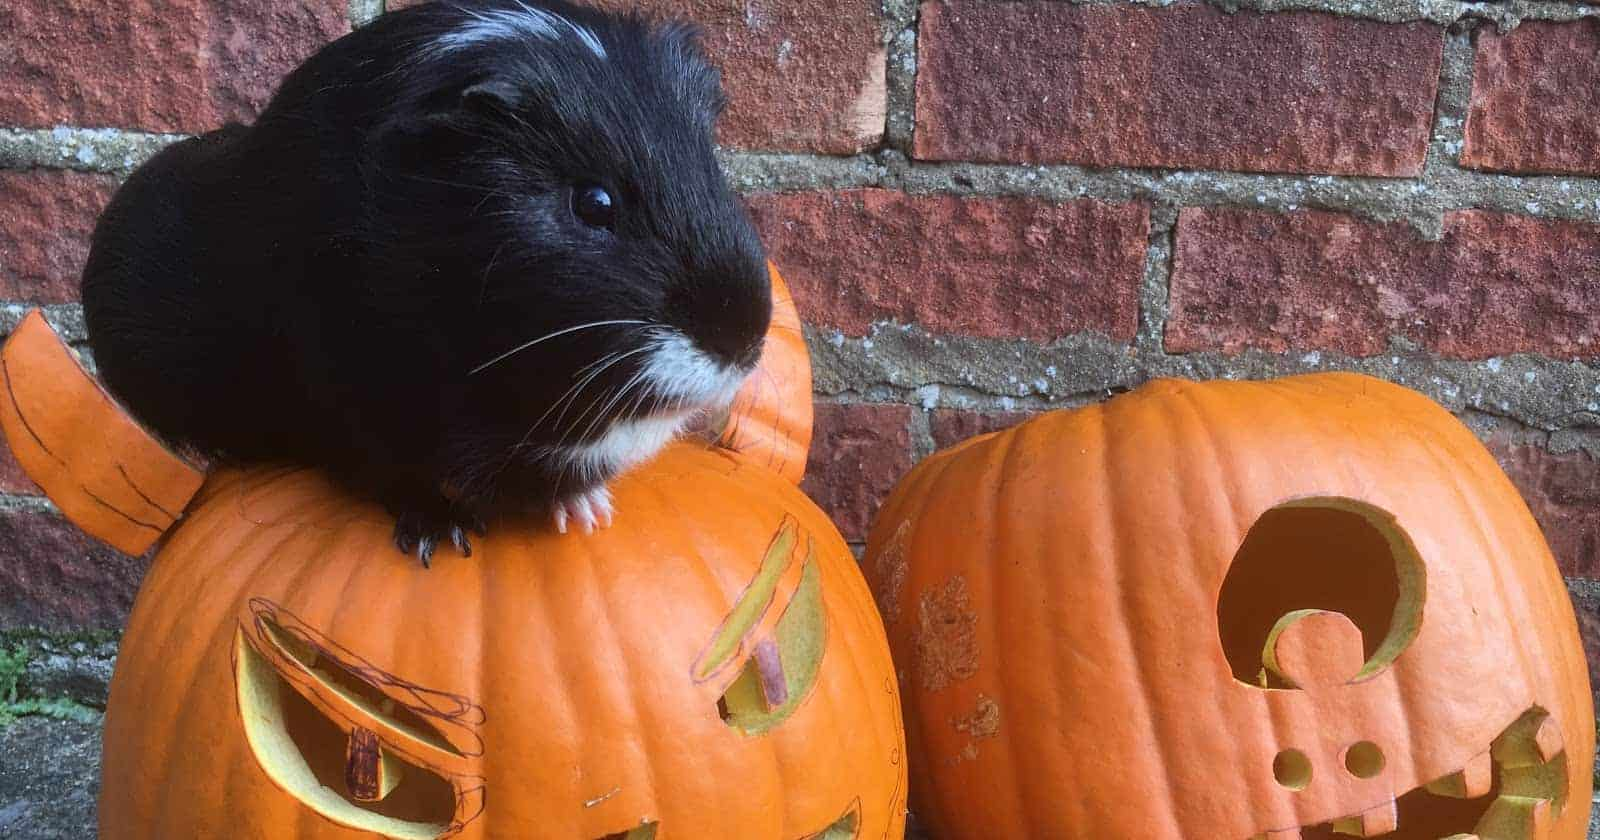 With October right around the corner, we're sharing 100 of the most deliciously spooky Halloween names for guinea pigs! Take a look!